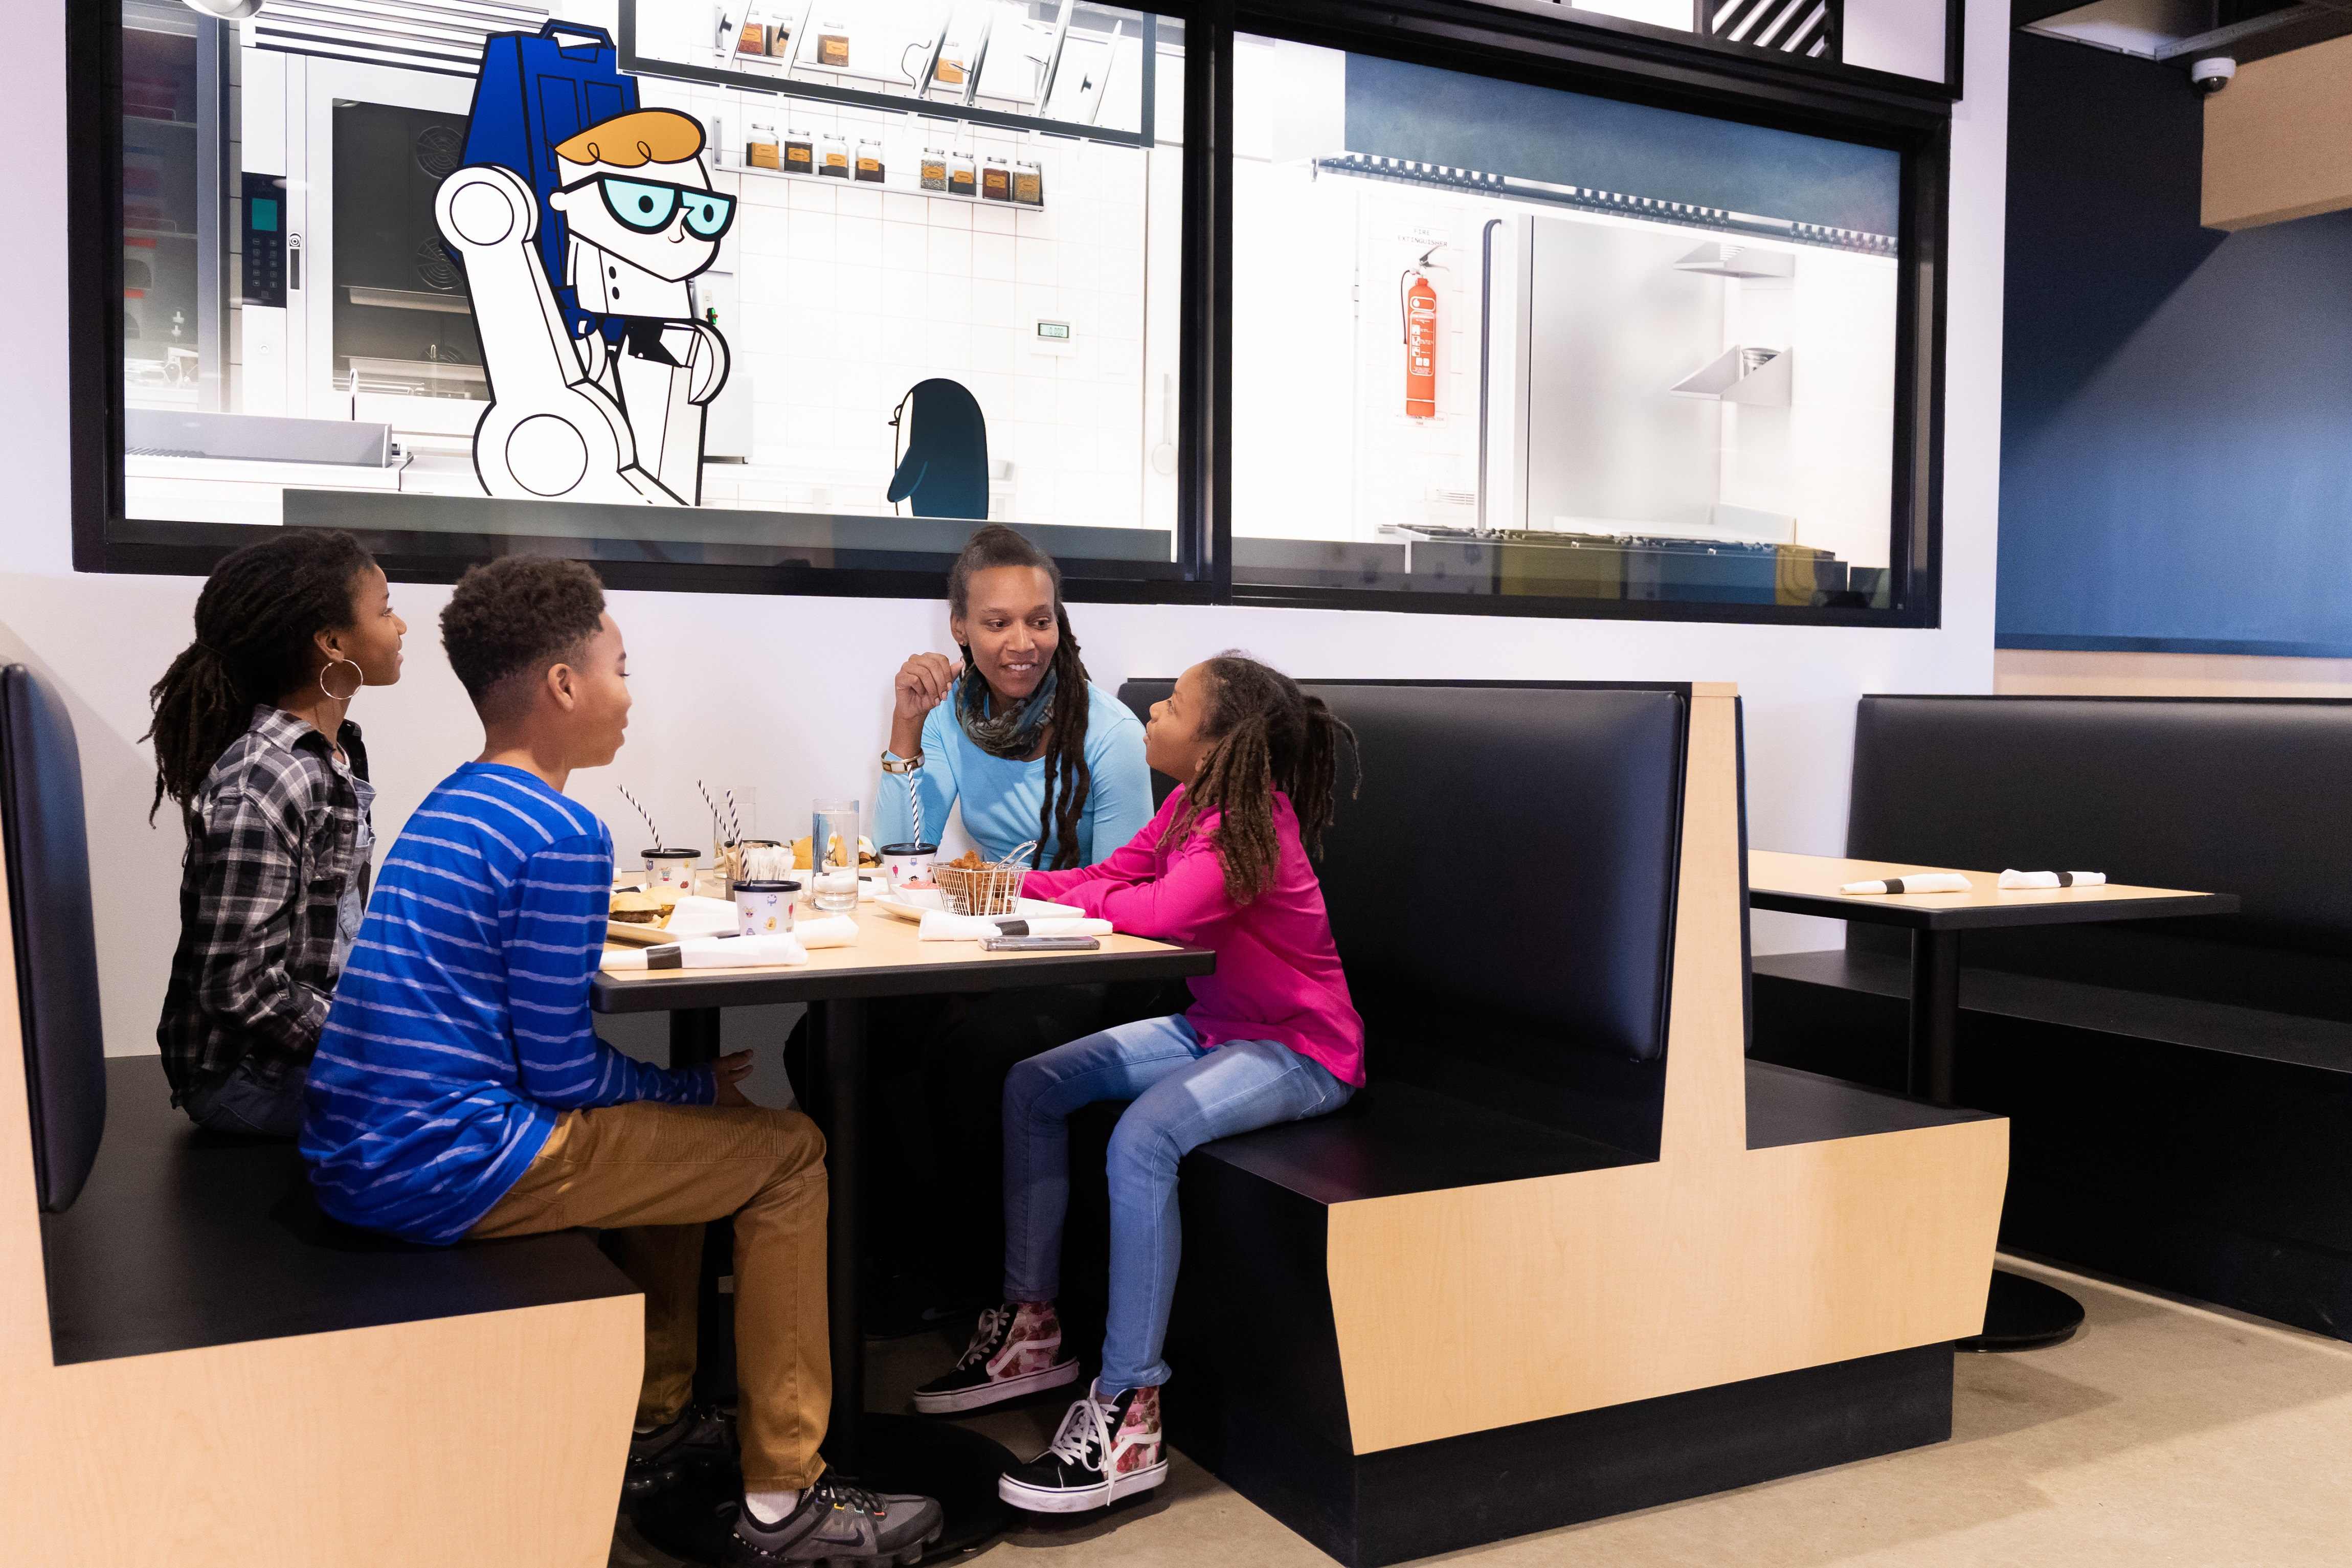 Family sitting in front of digital kitchen in the Cartoon Kitchen restaurant